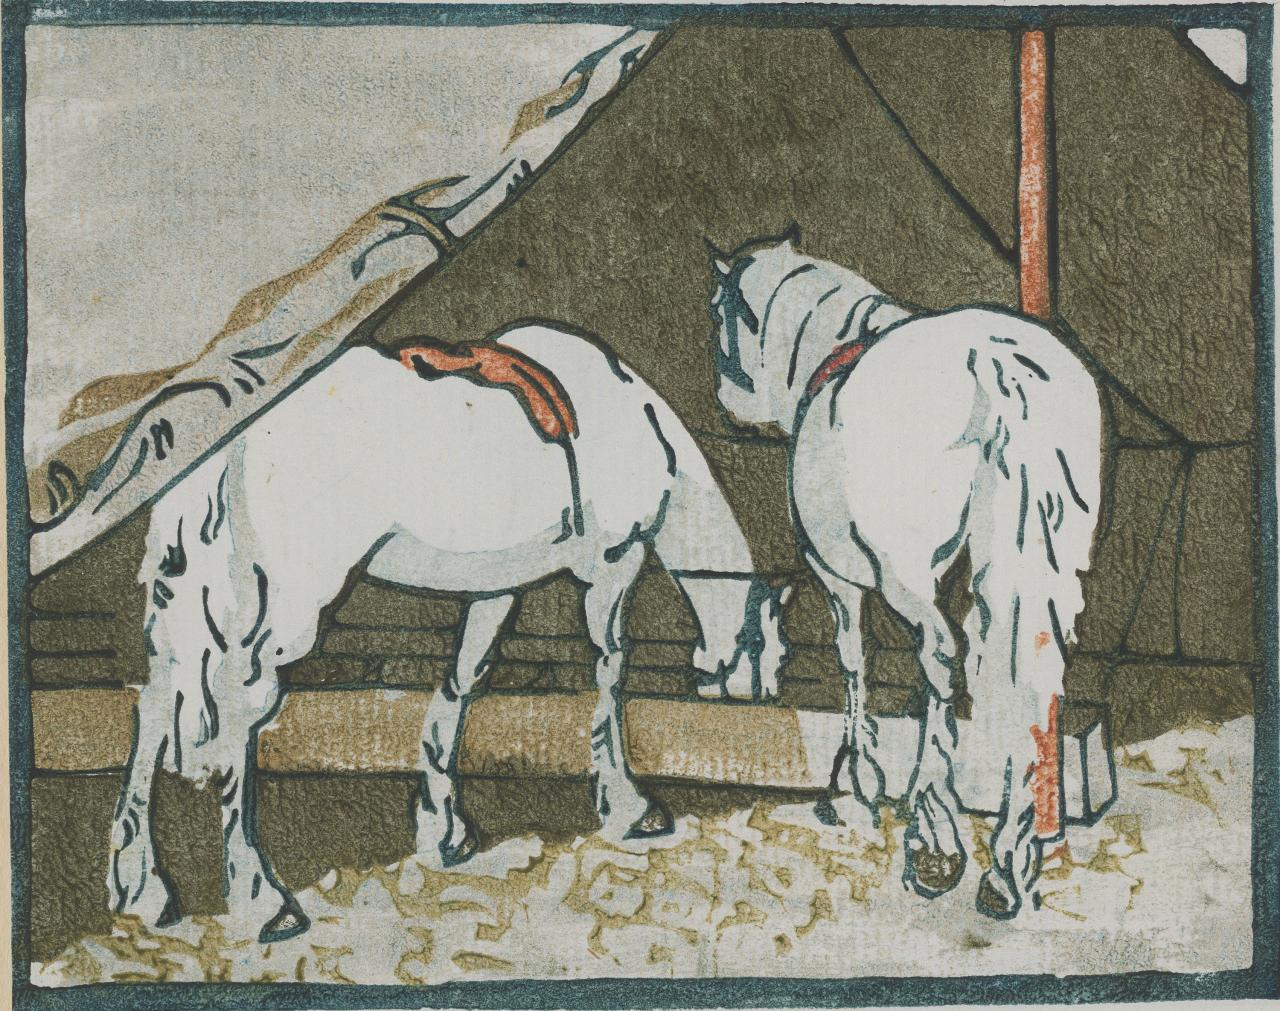 (Untitled) (Two horses in circus tent)